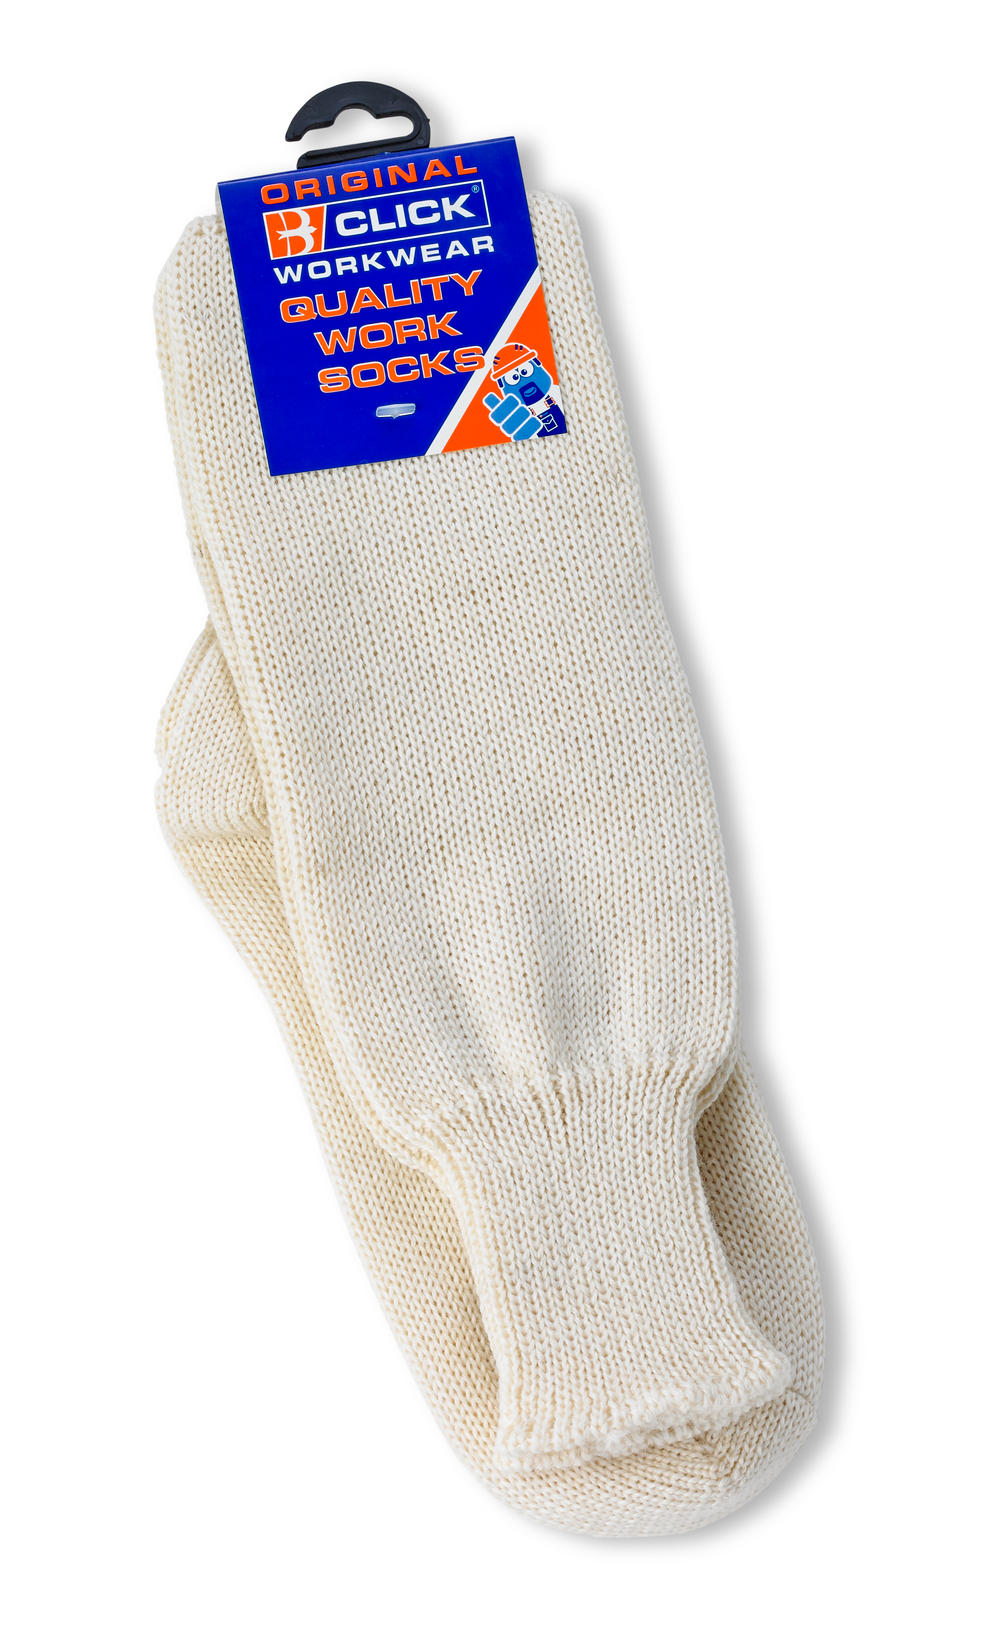 SEA BOOT SOCKS - SBS